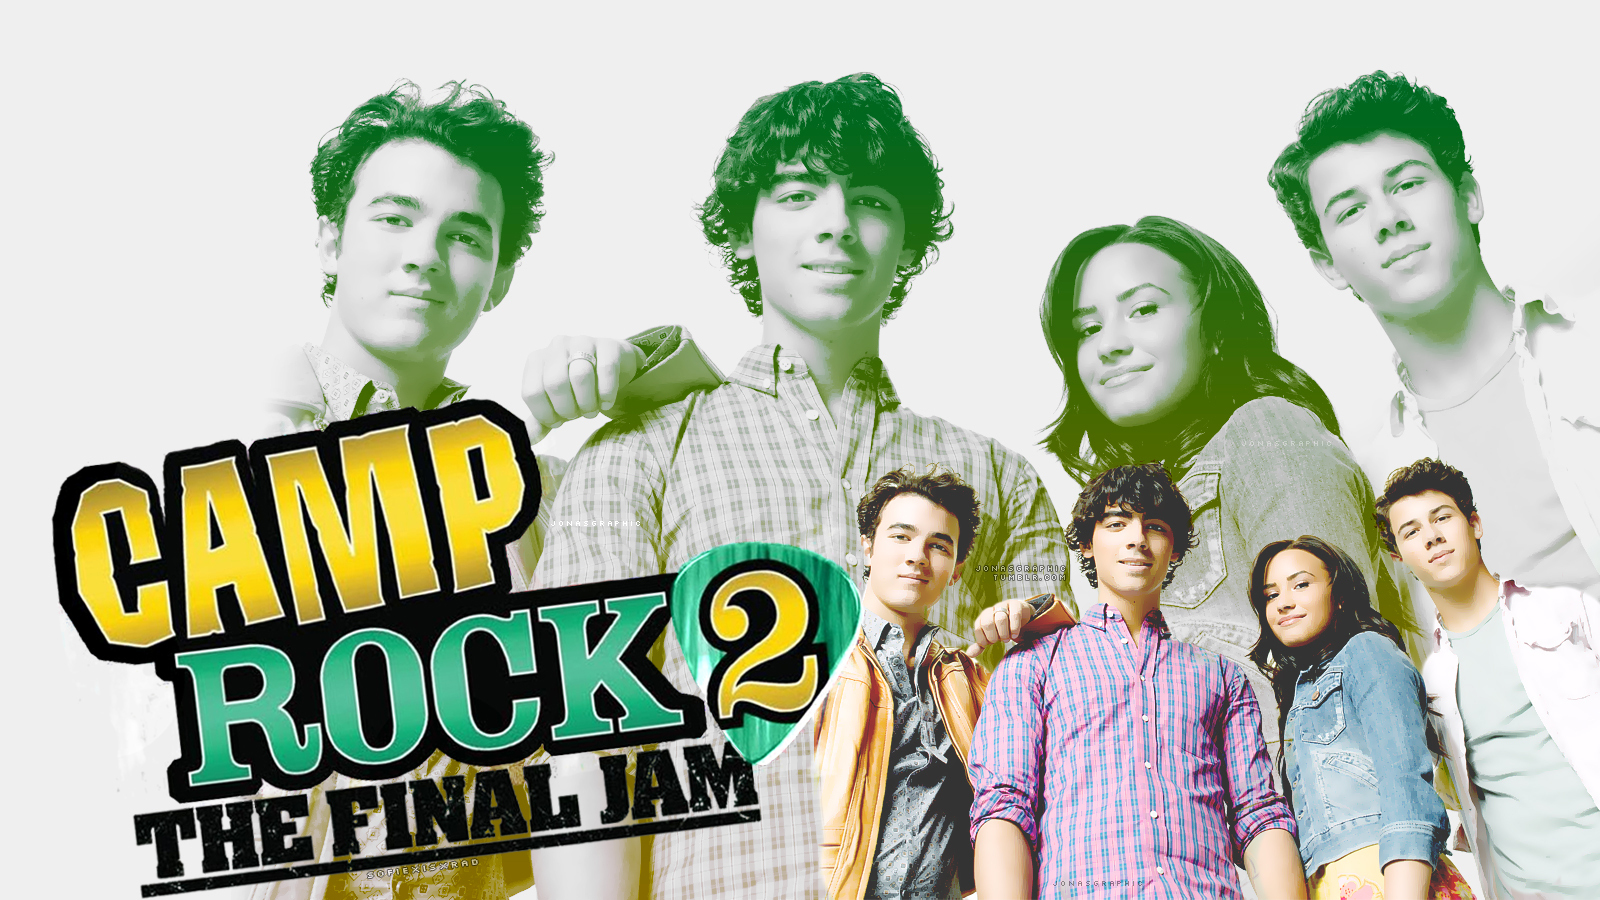 Camp Rock 2 images Camp Rock 2 HD wallpaper and background photos ...